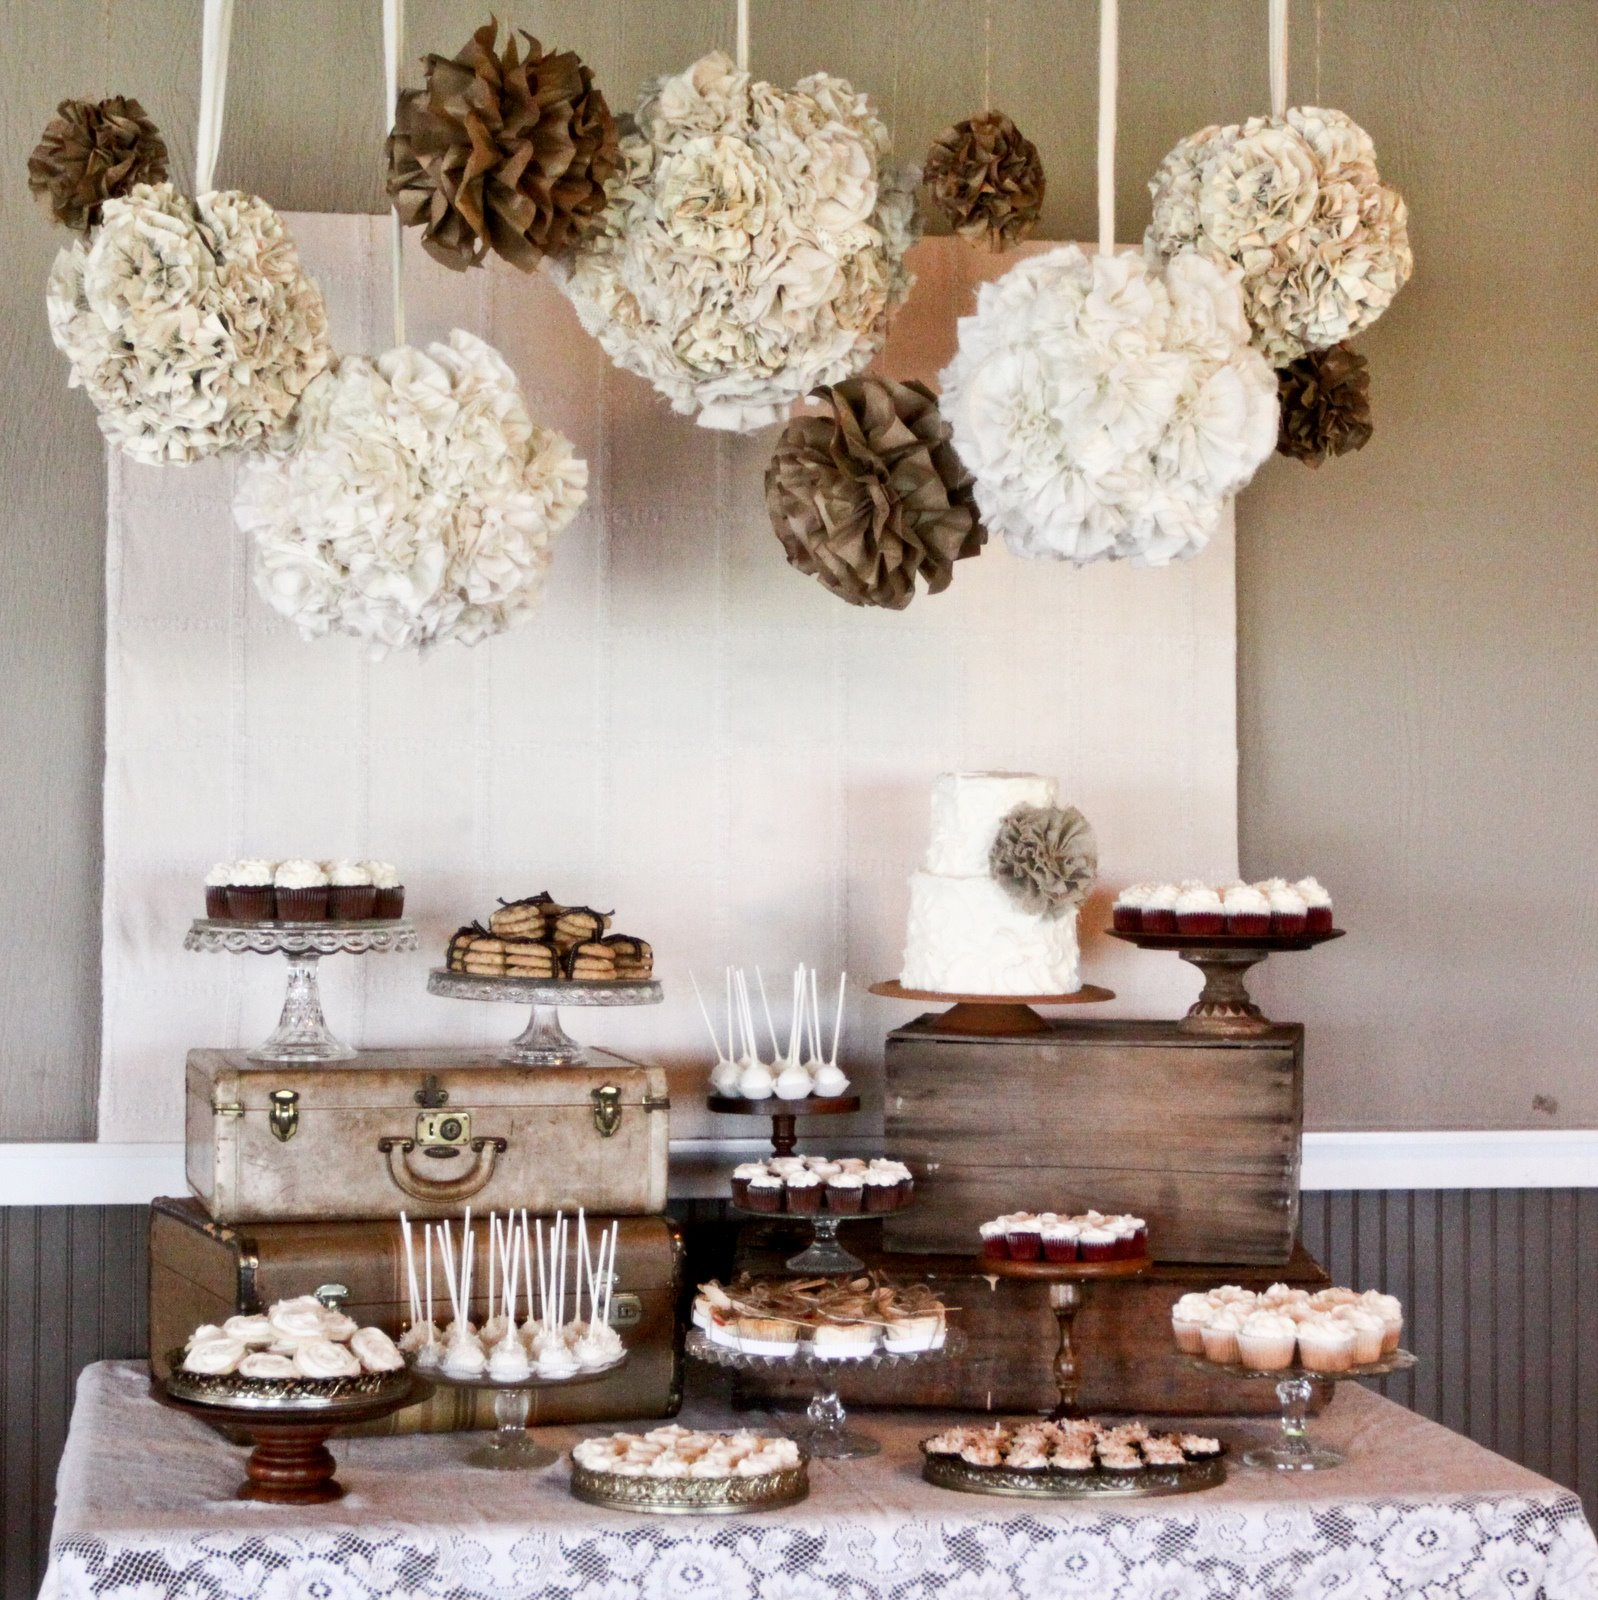 Elegant Wedding Cake Dessert Table Inspiration: Organizitpartystyling: Wedding Dessert Table Collection